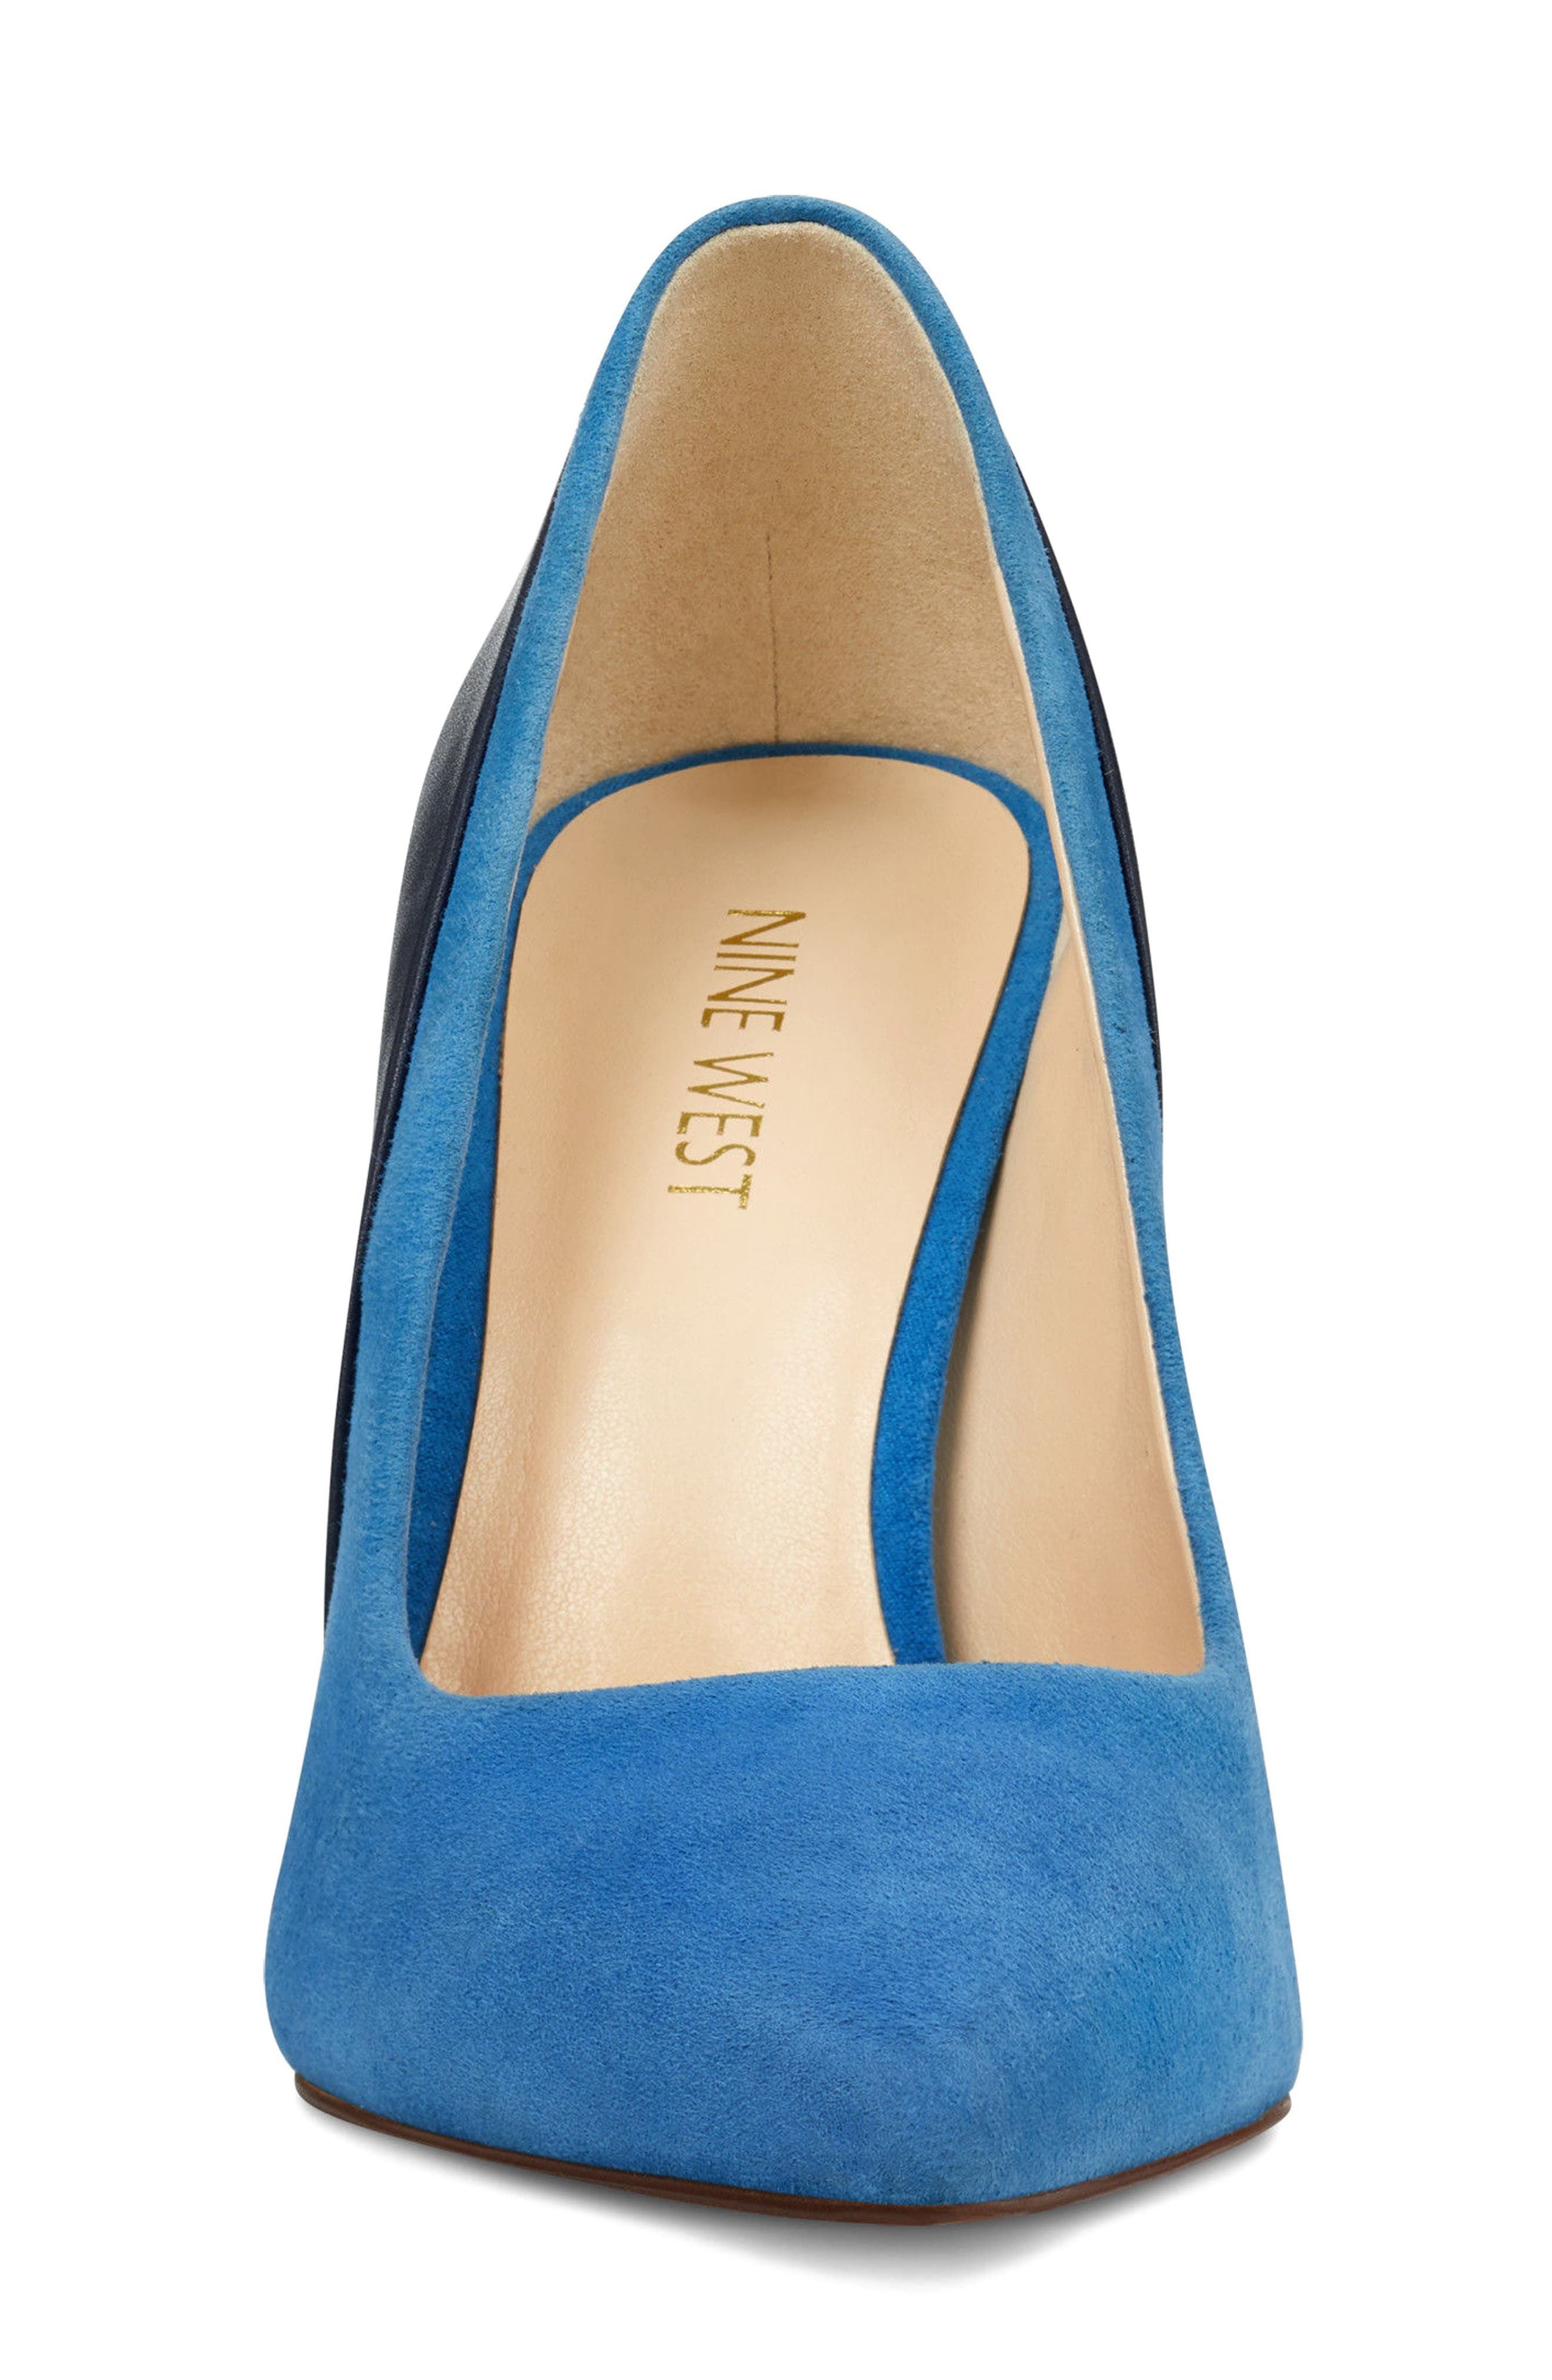 Taymra Pointy Toe Pump,                             Alternate thumbnail 4, color,                             Blue/ Navy Suede